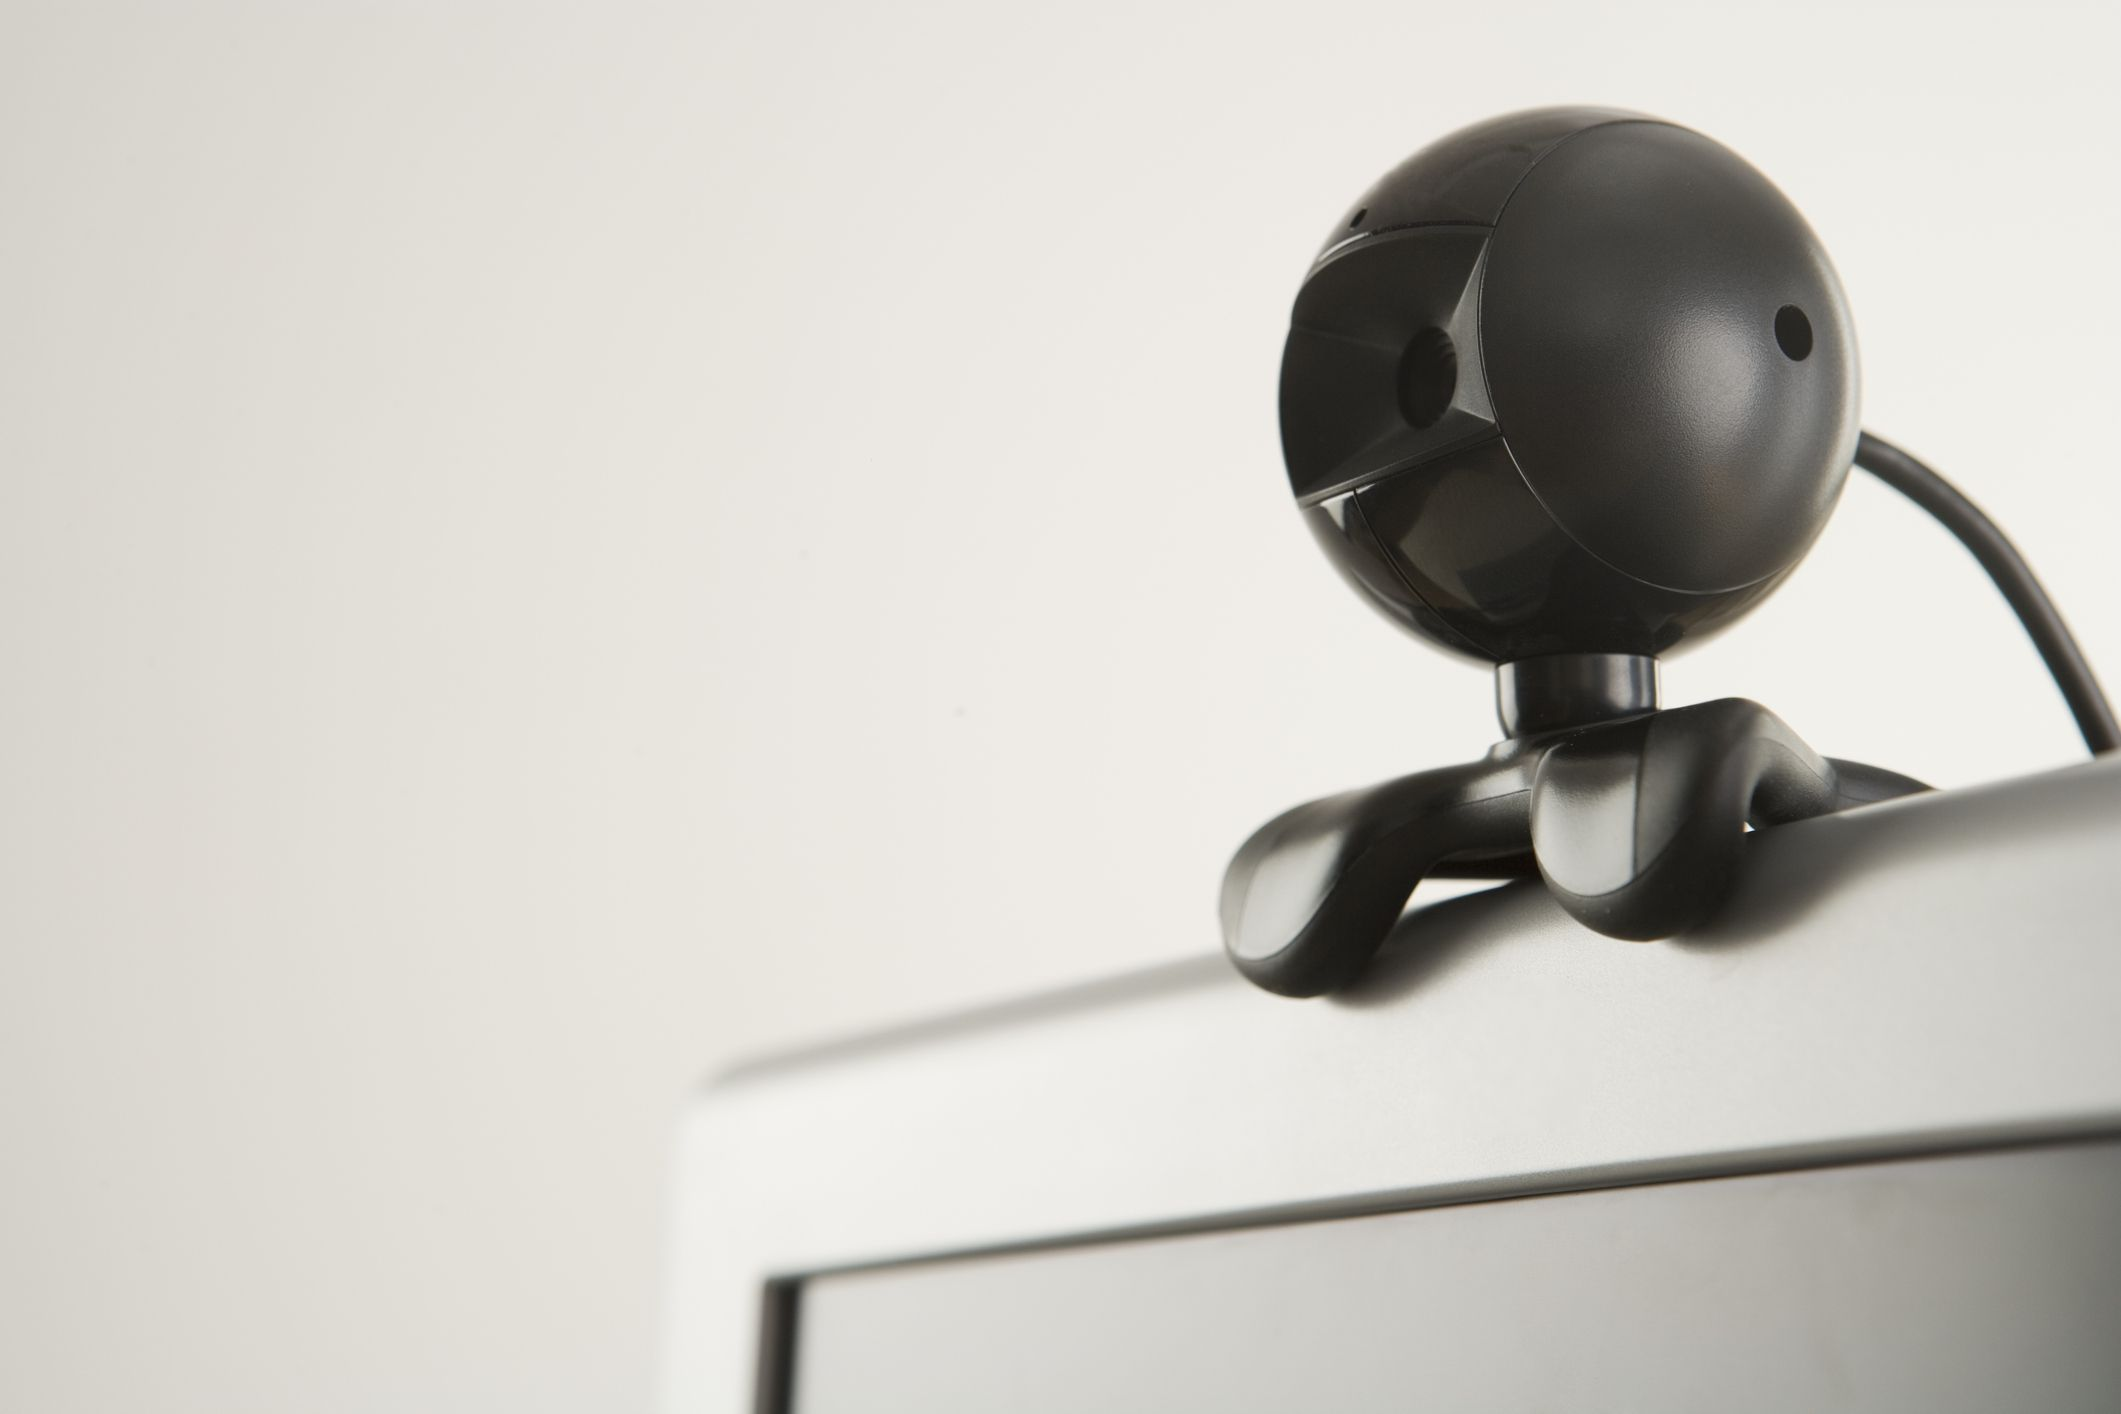 An IP webcam perched on top of a television